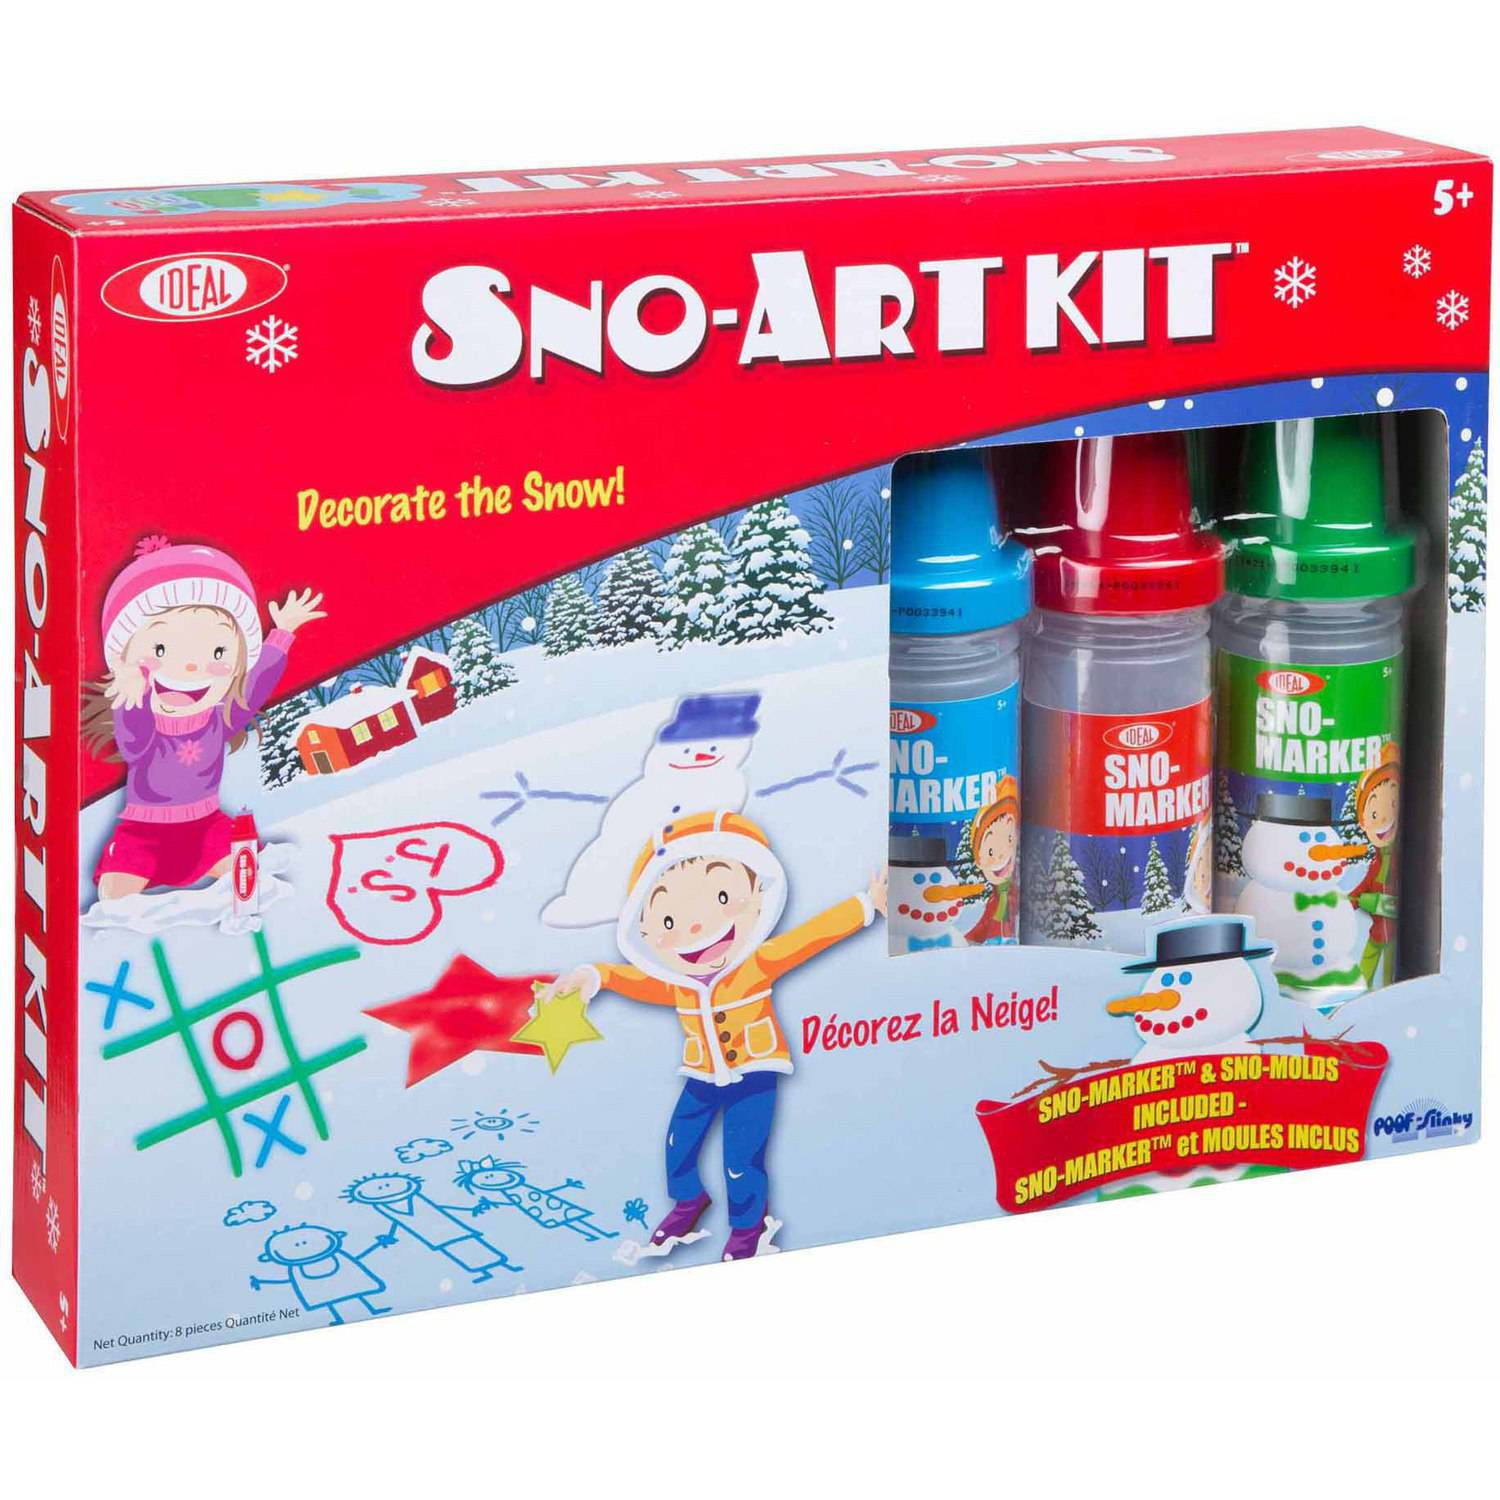 Ideal Snoart Kit Walmartcom